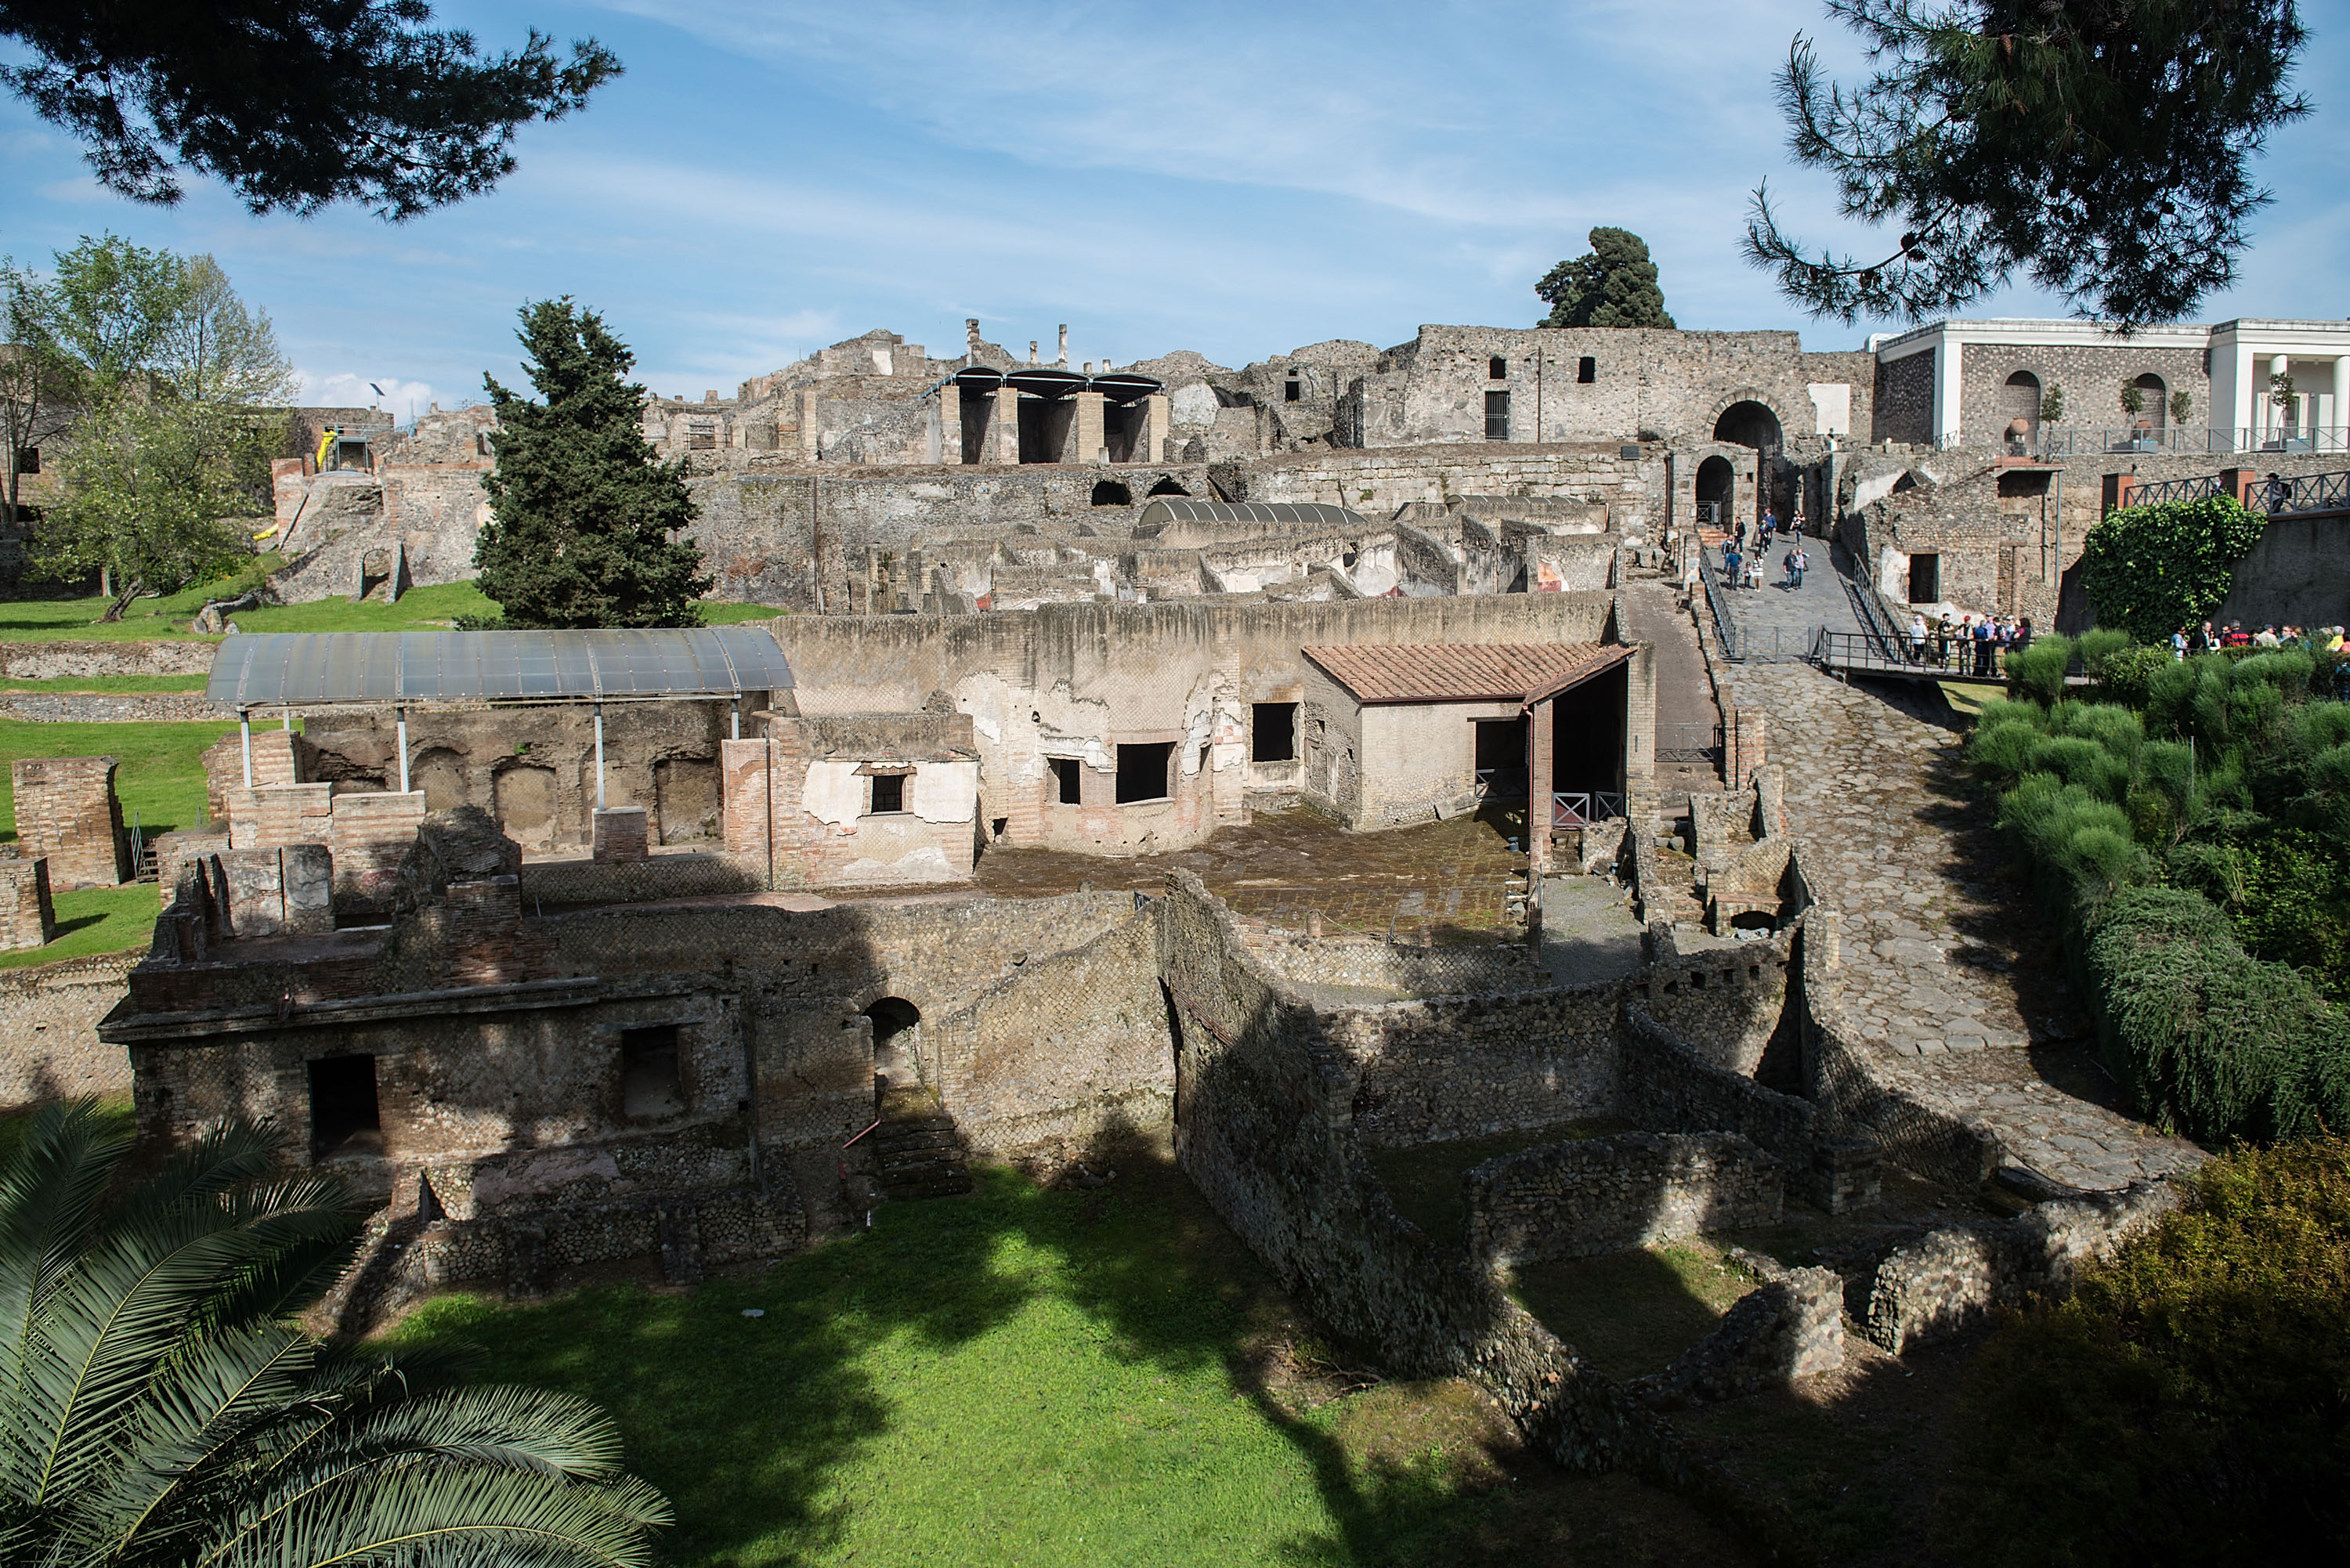 Lo scavo archeologico di Pompei - Getty Images